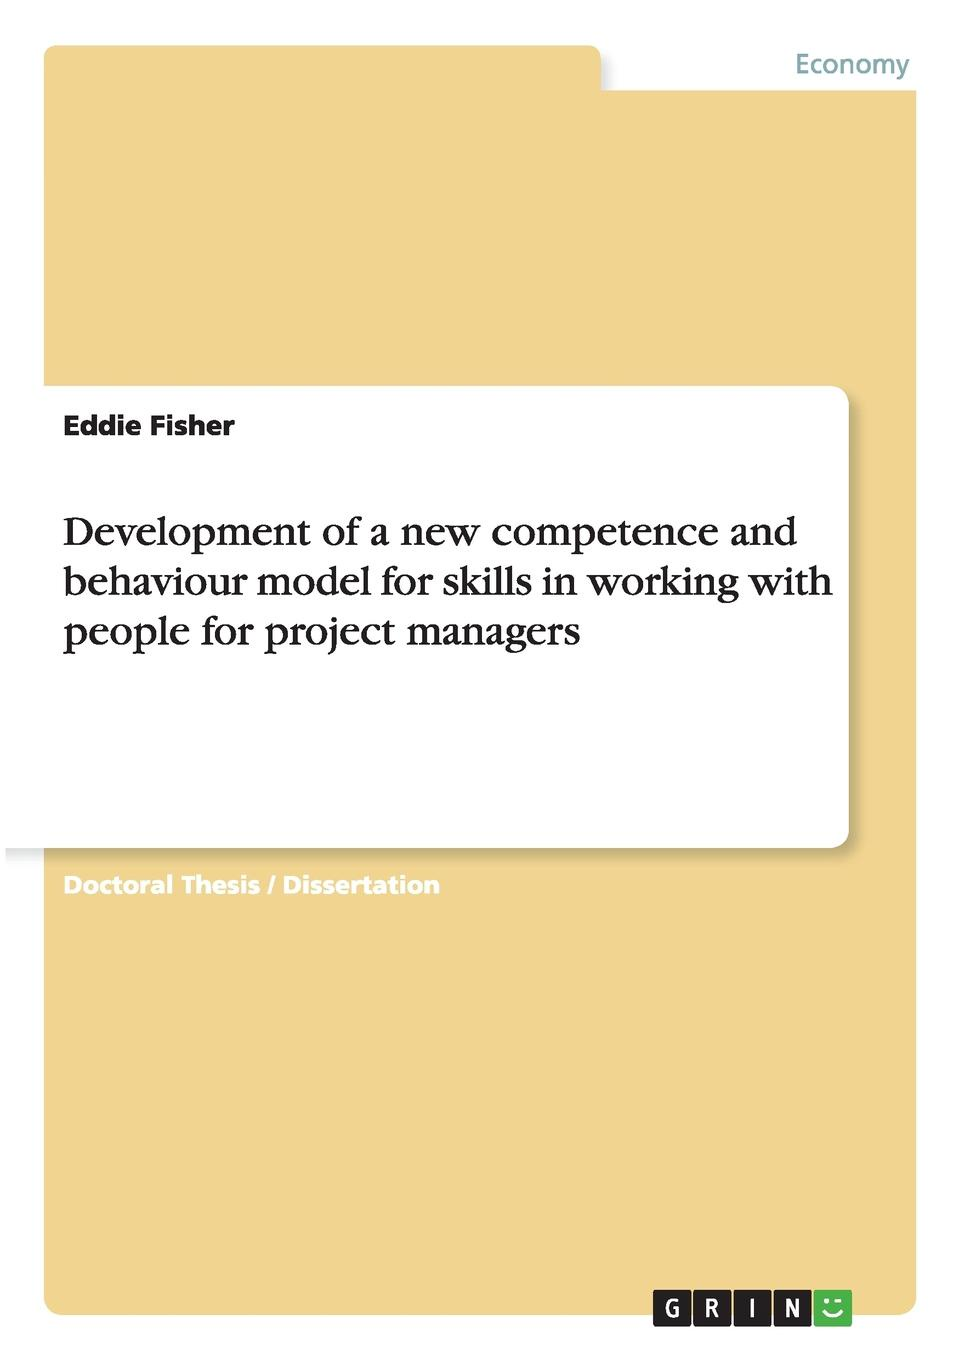 Eddie Fisher Development of a new competence and behaviour model for skills in working with people for project managers mohamed msoroka project design and management knowledge and project management skills